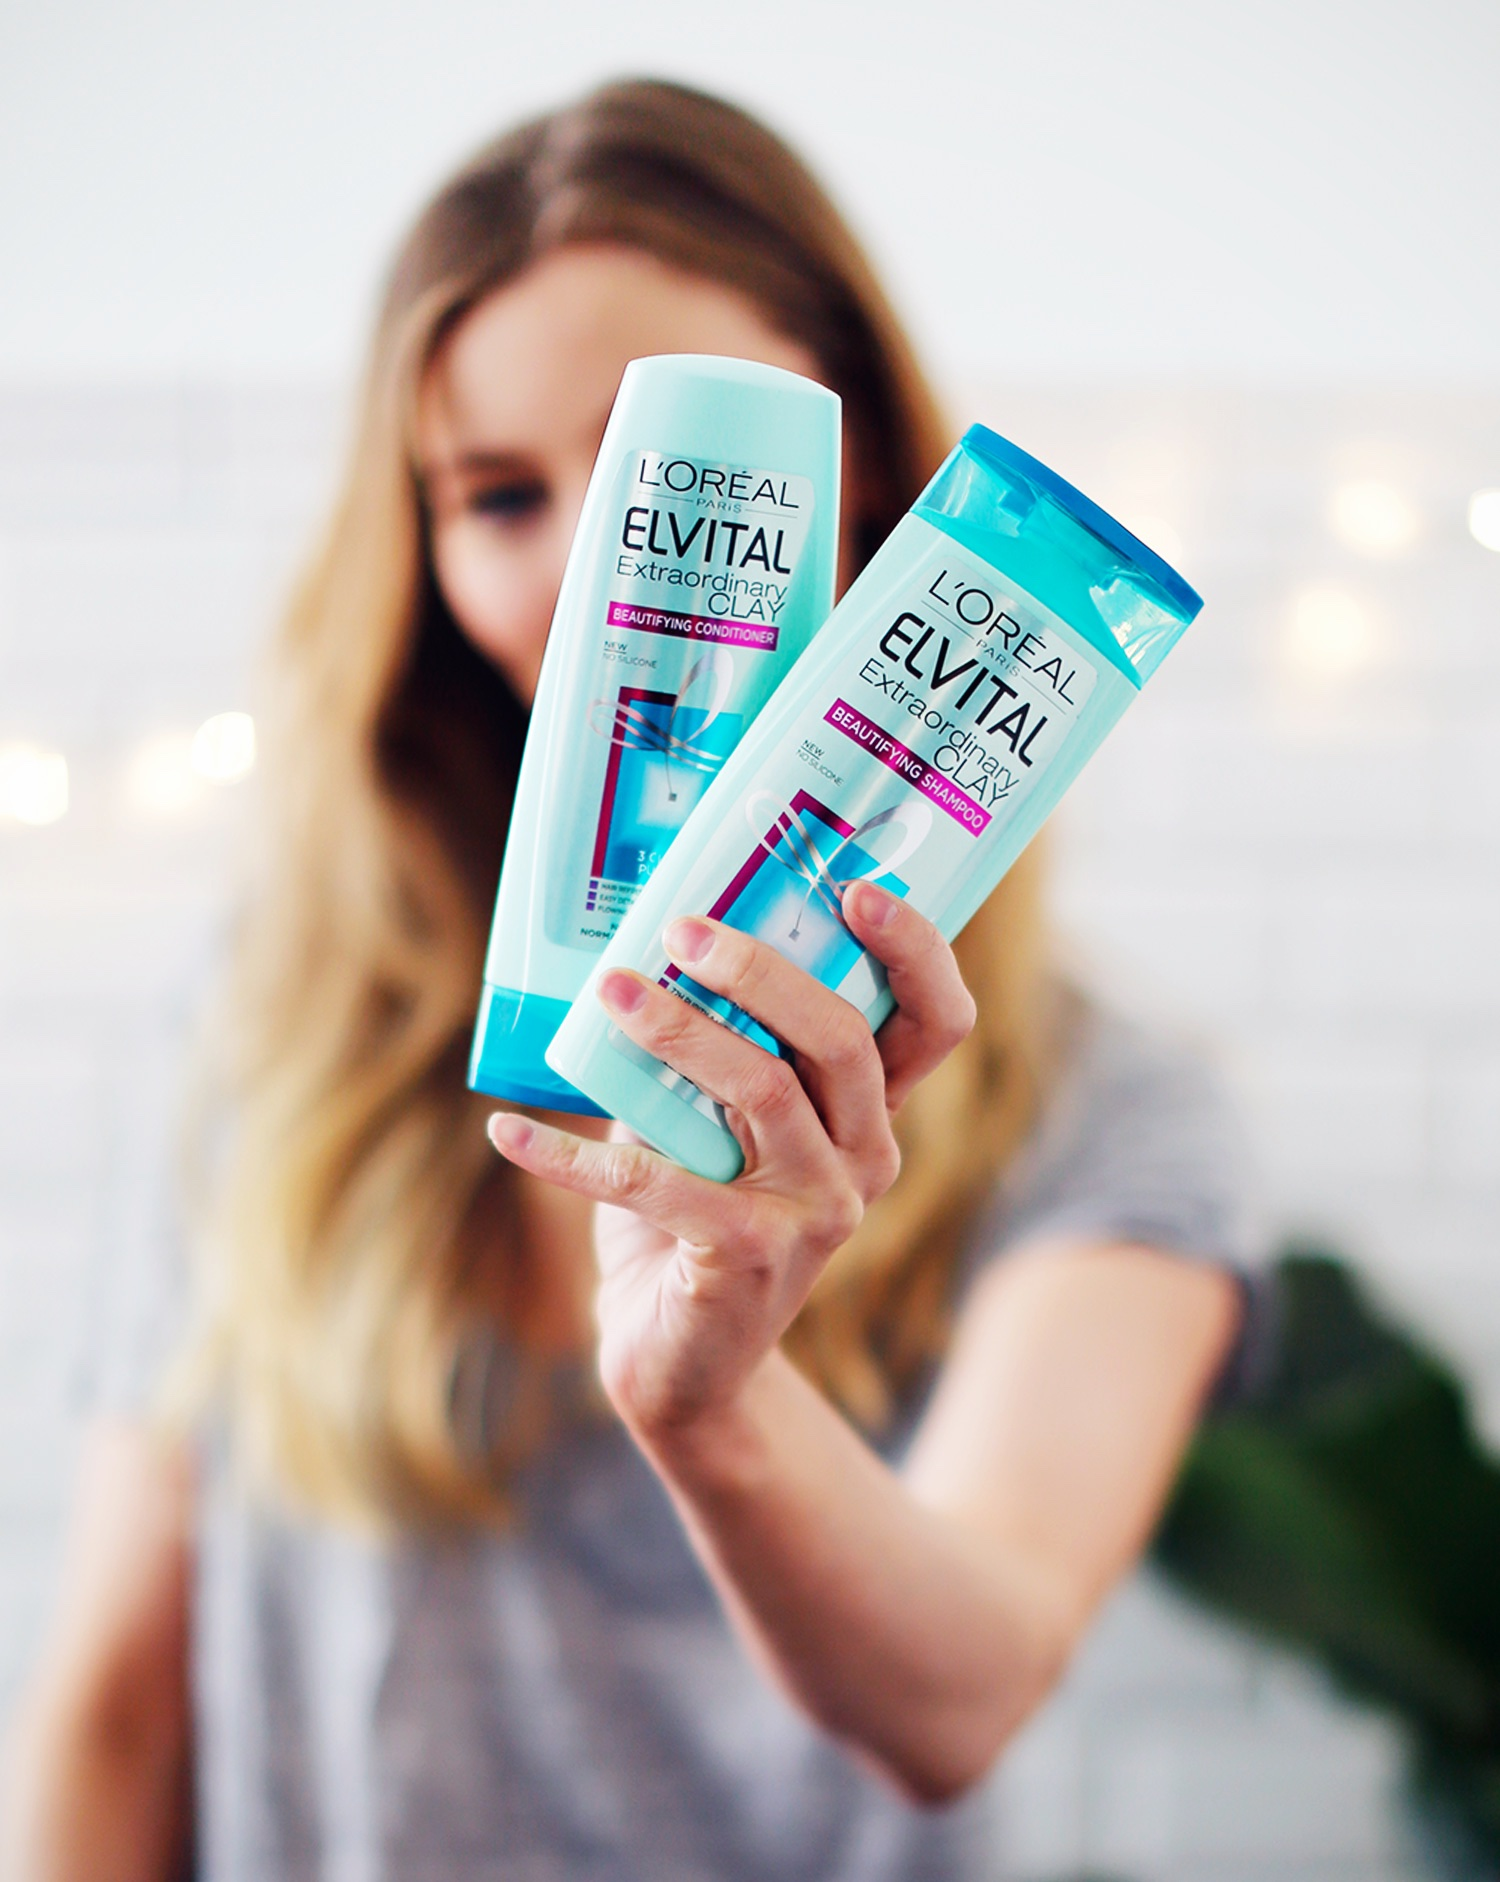 loreal-elvital-extraordinary-clay